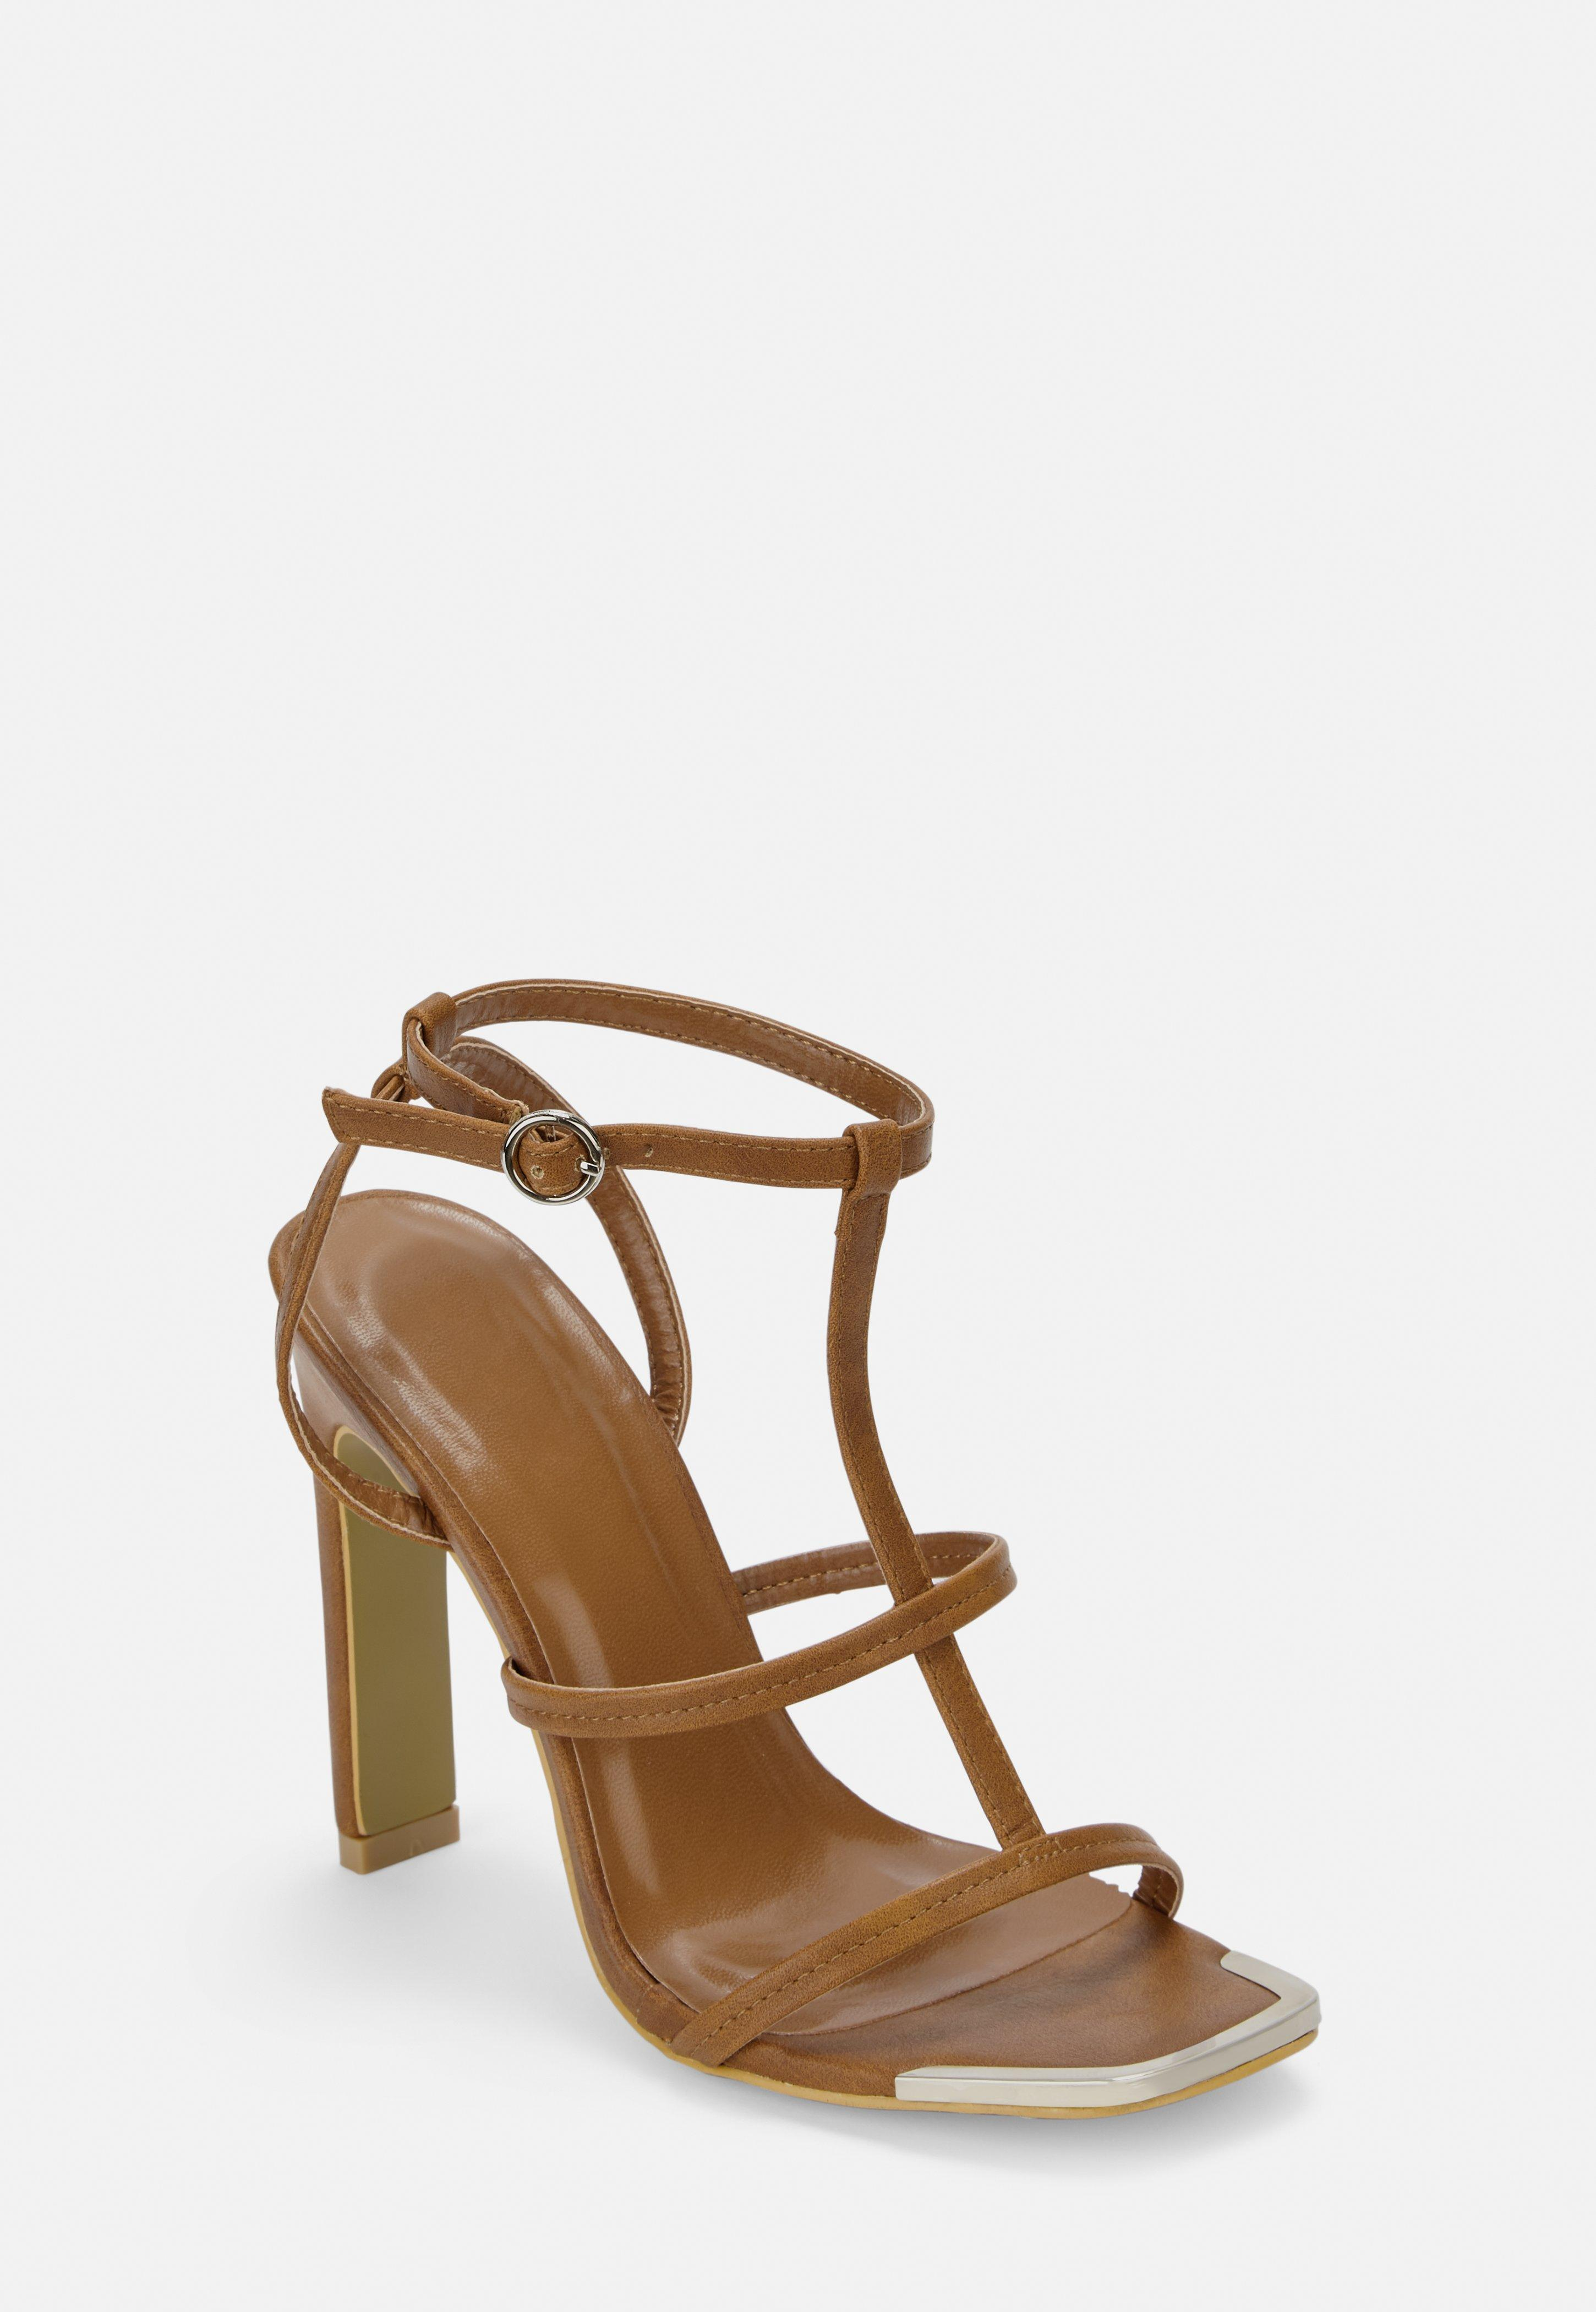 e88e032fcd Heeled Sandals | Strappy & Barely There Heels - Missguided